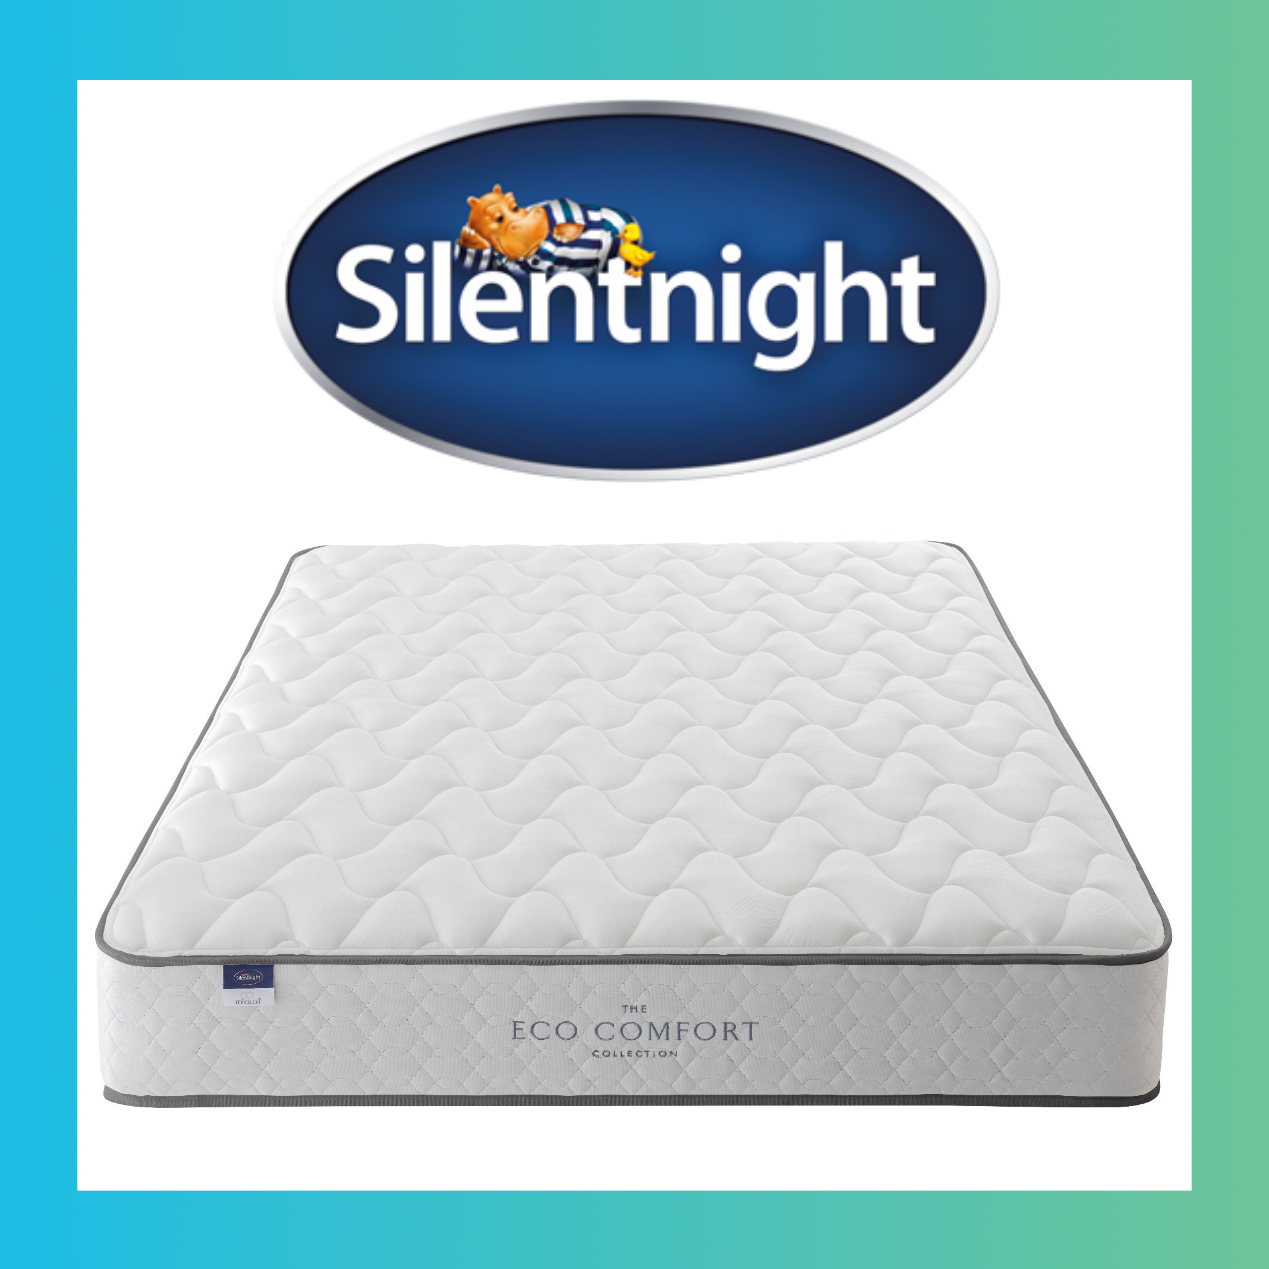 Silent Night Miracoil 3 Pillow Top Mattress Silent Night 4 6 Mattress Eco Collection Rent2buy